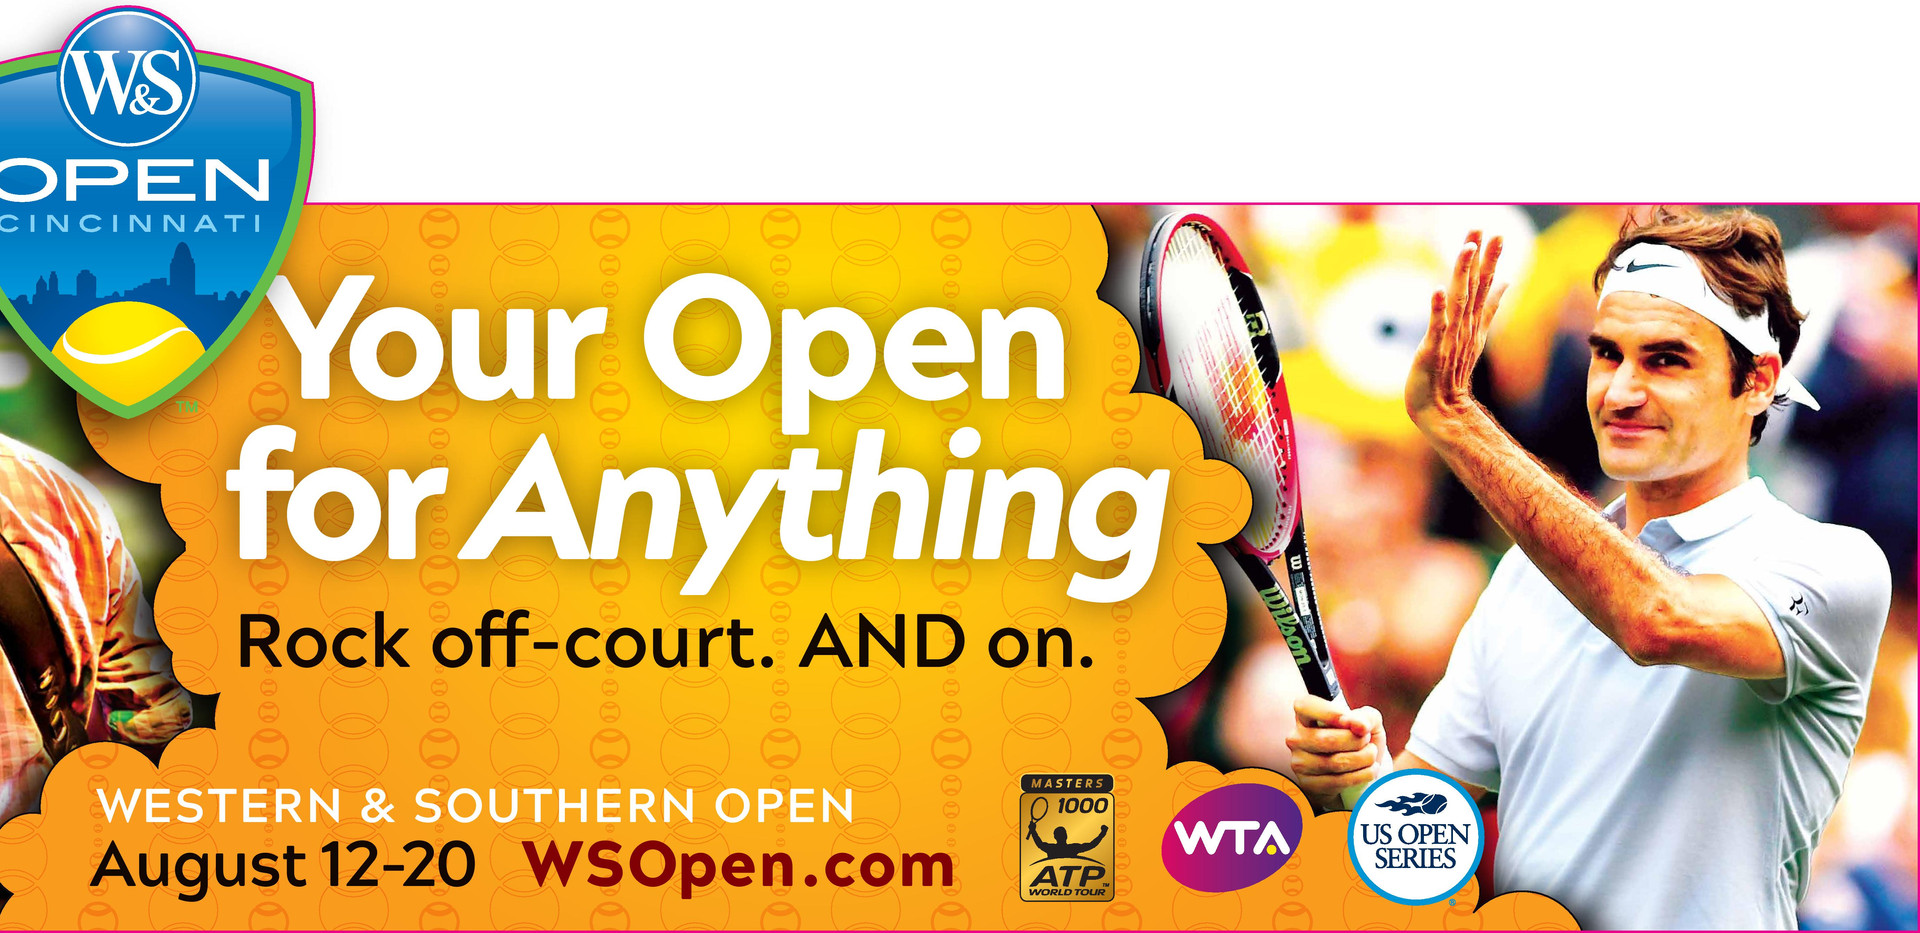 Western&SouthernOpen_Boards 17-page-002.